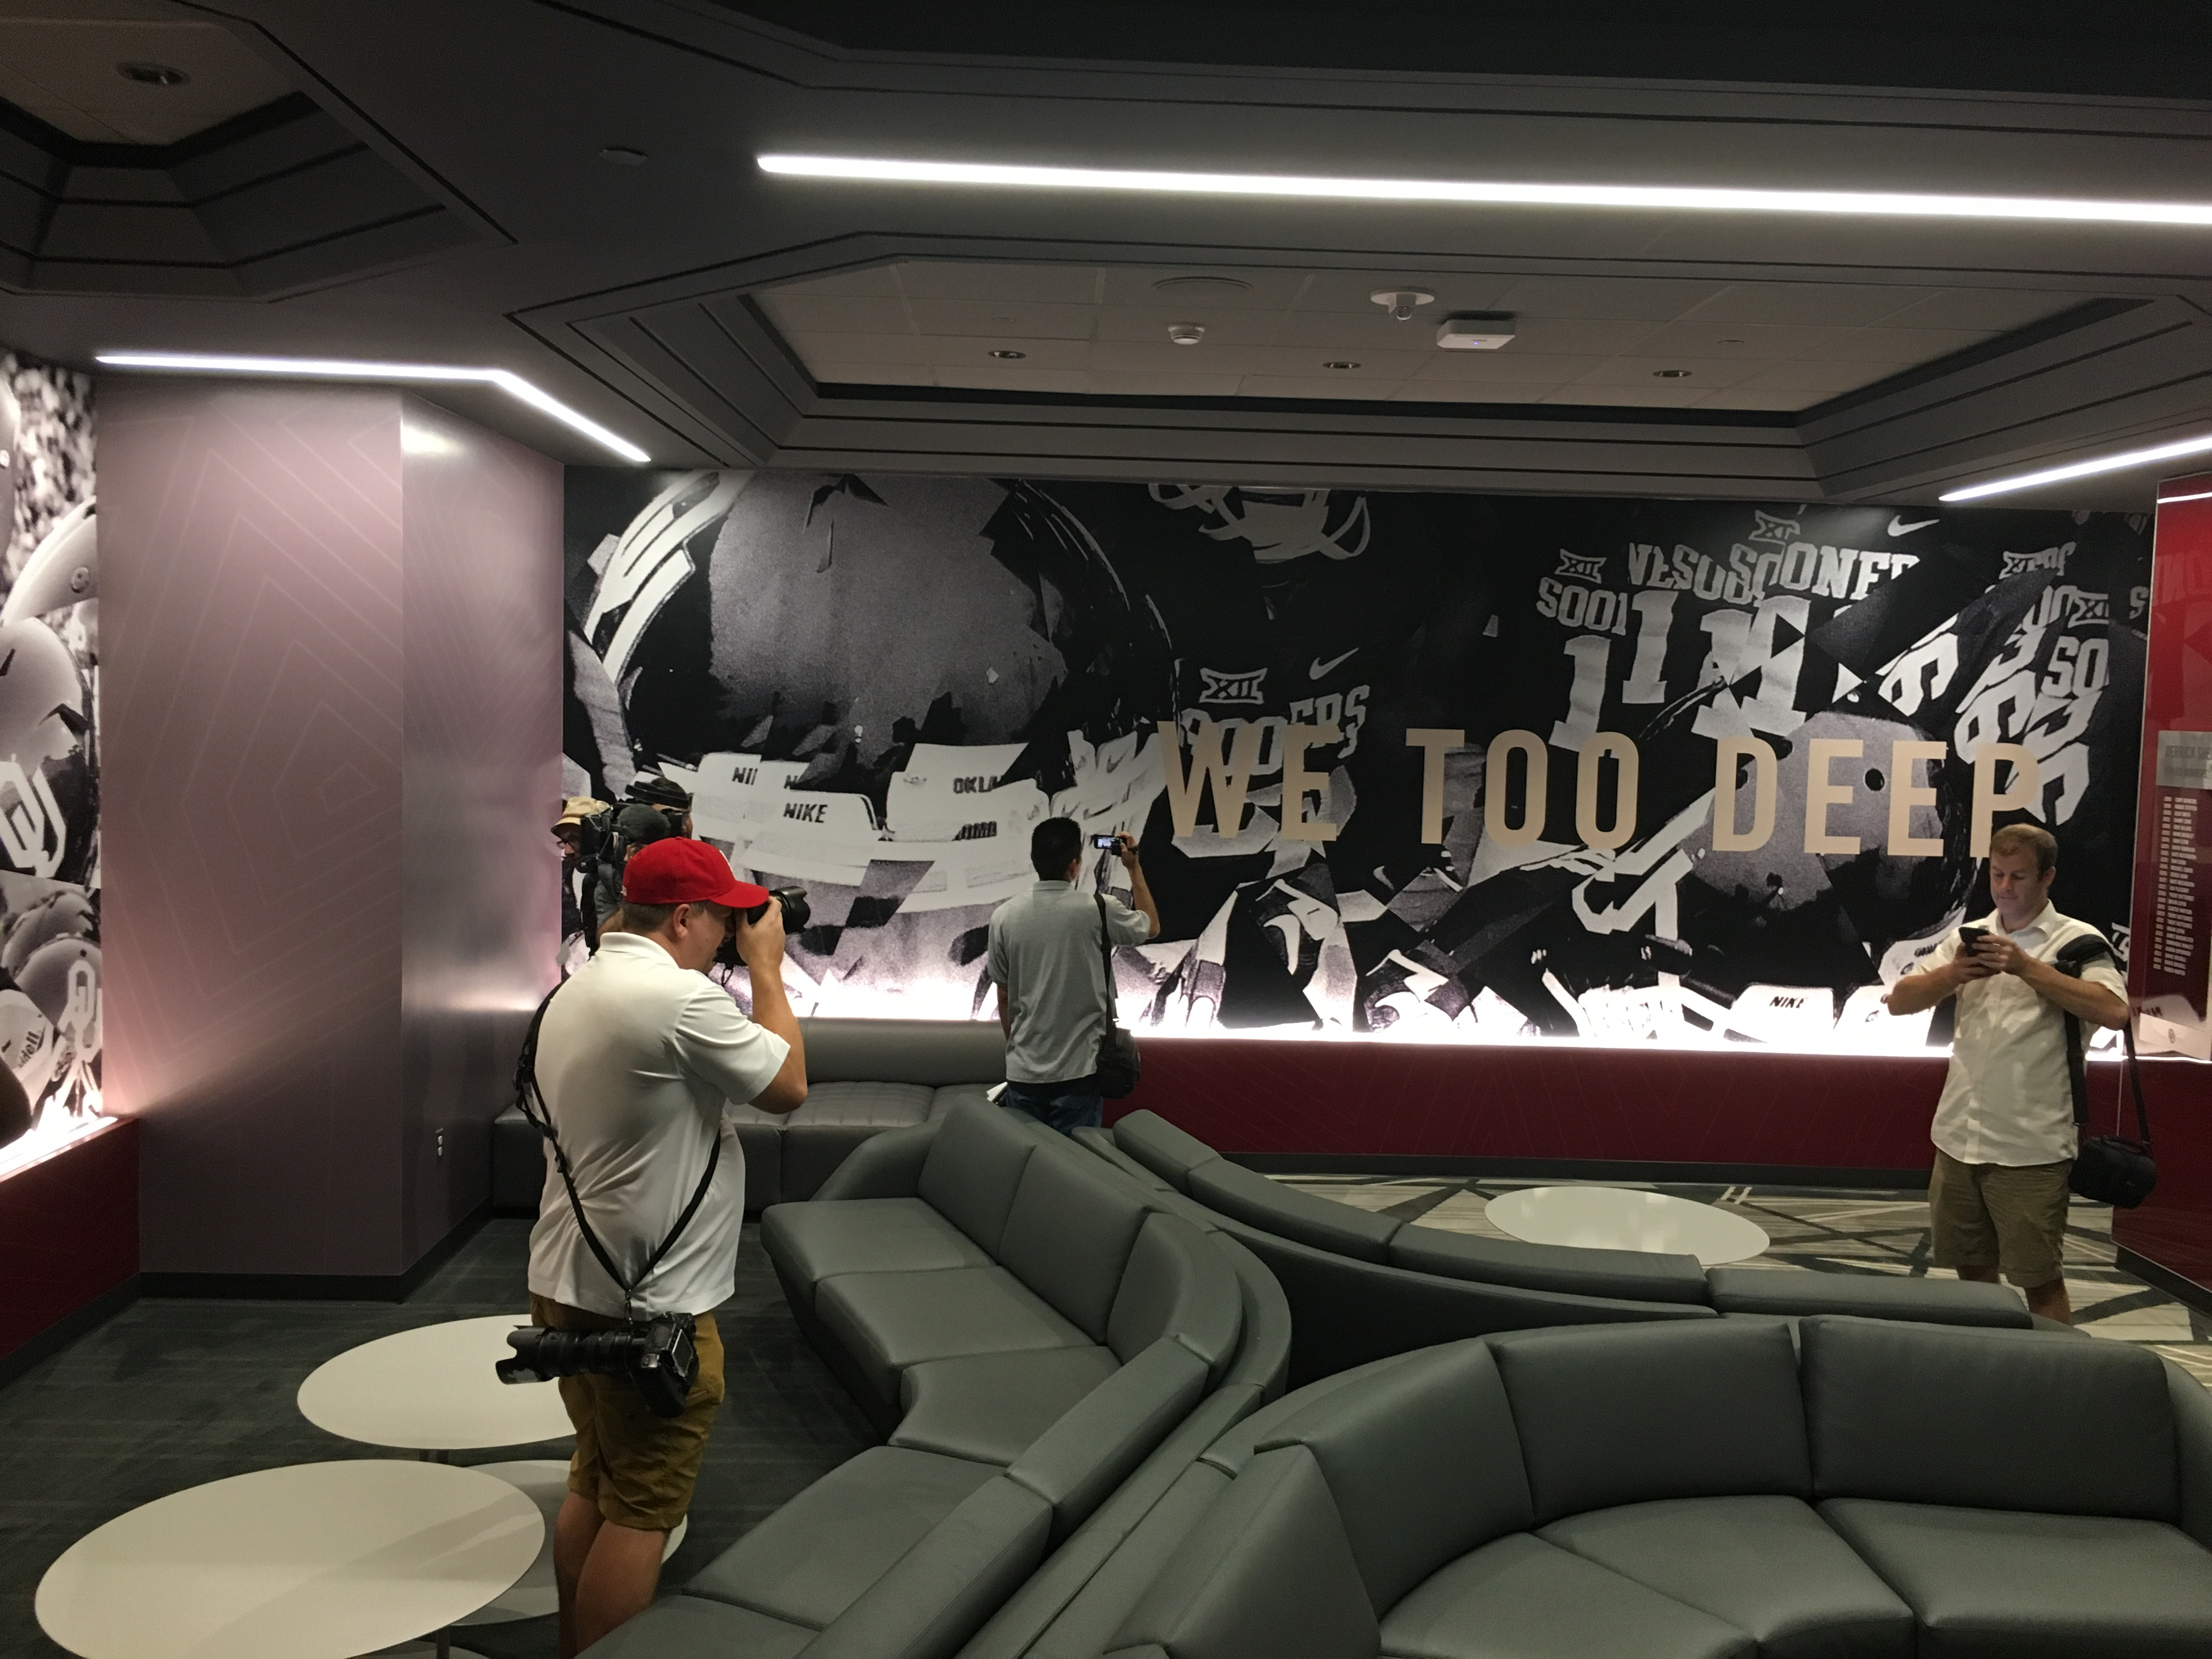 Photographers In The Players Lounge Capture Images Of OUs New Stylized Murals Throughout Facility PHOTO John E Hoover